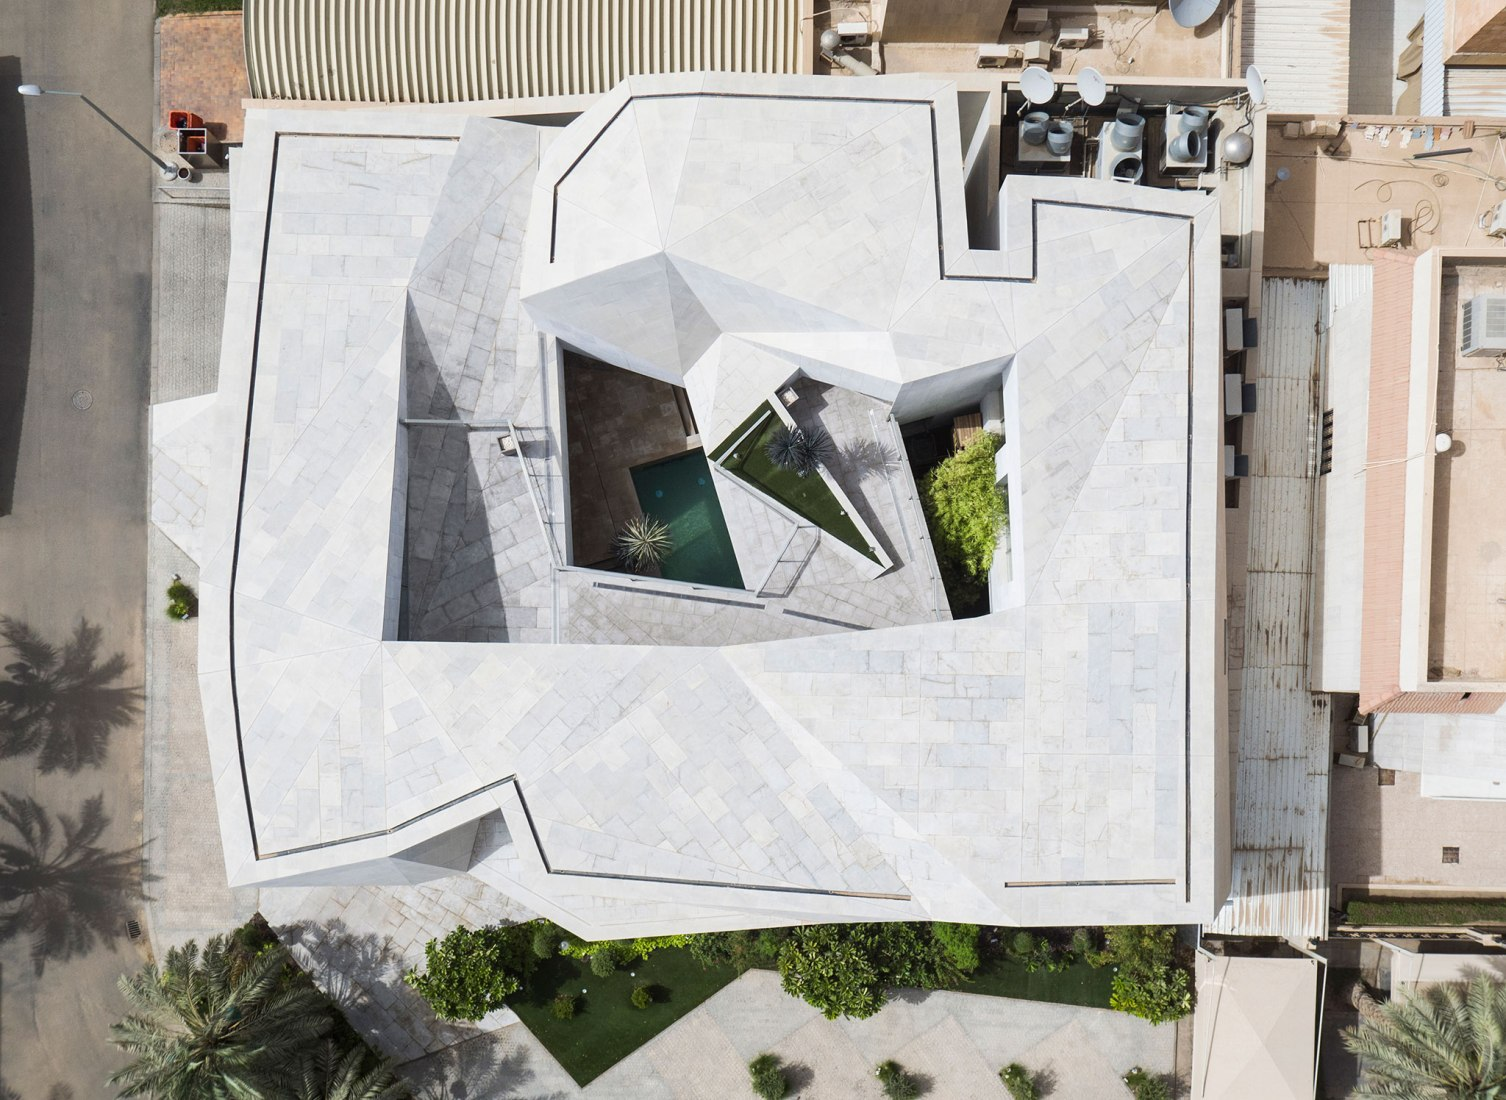 A House Vs Rock Rock House By Agi Architects The Strength Of - The-contemporary-black-and-white-house-by-agi-architects